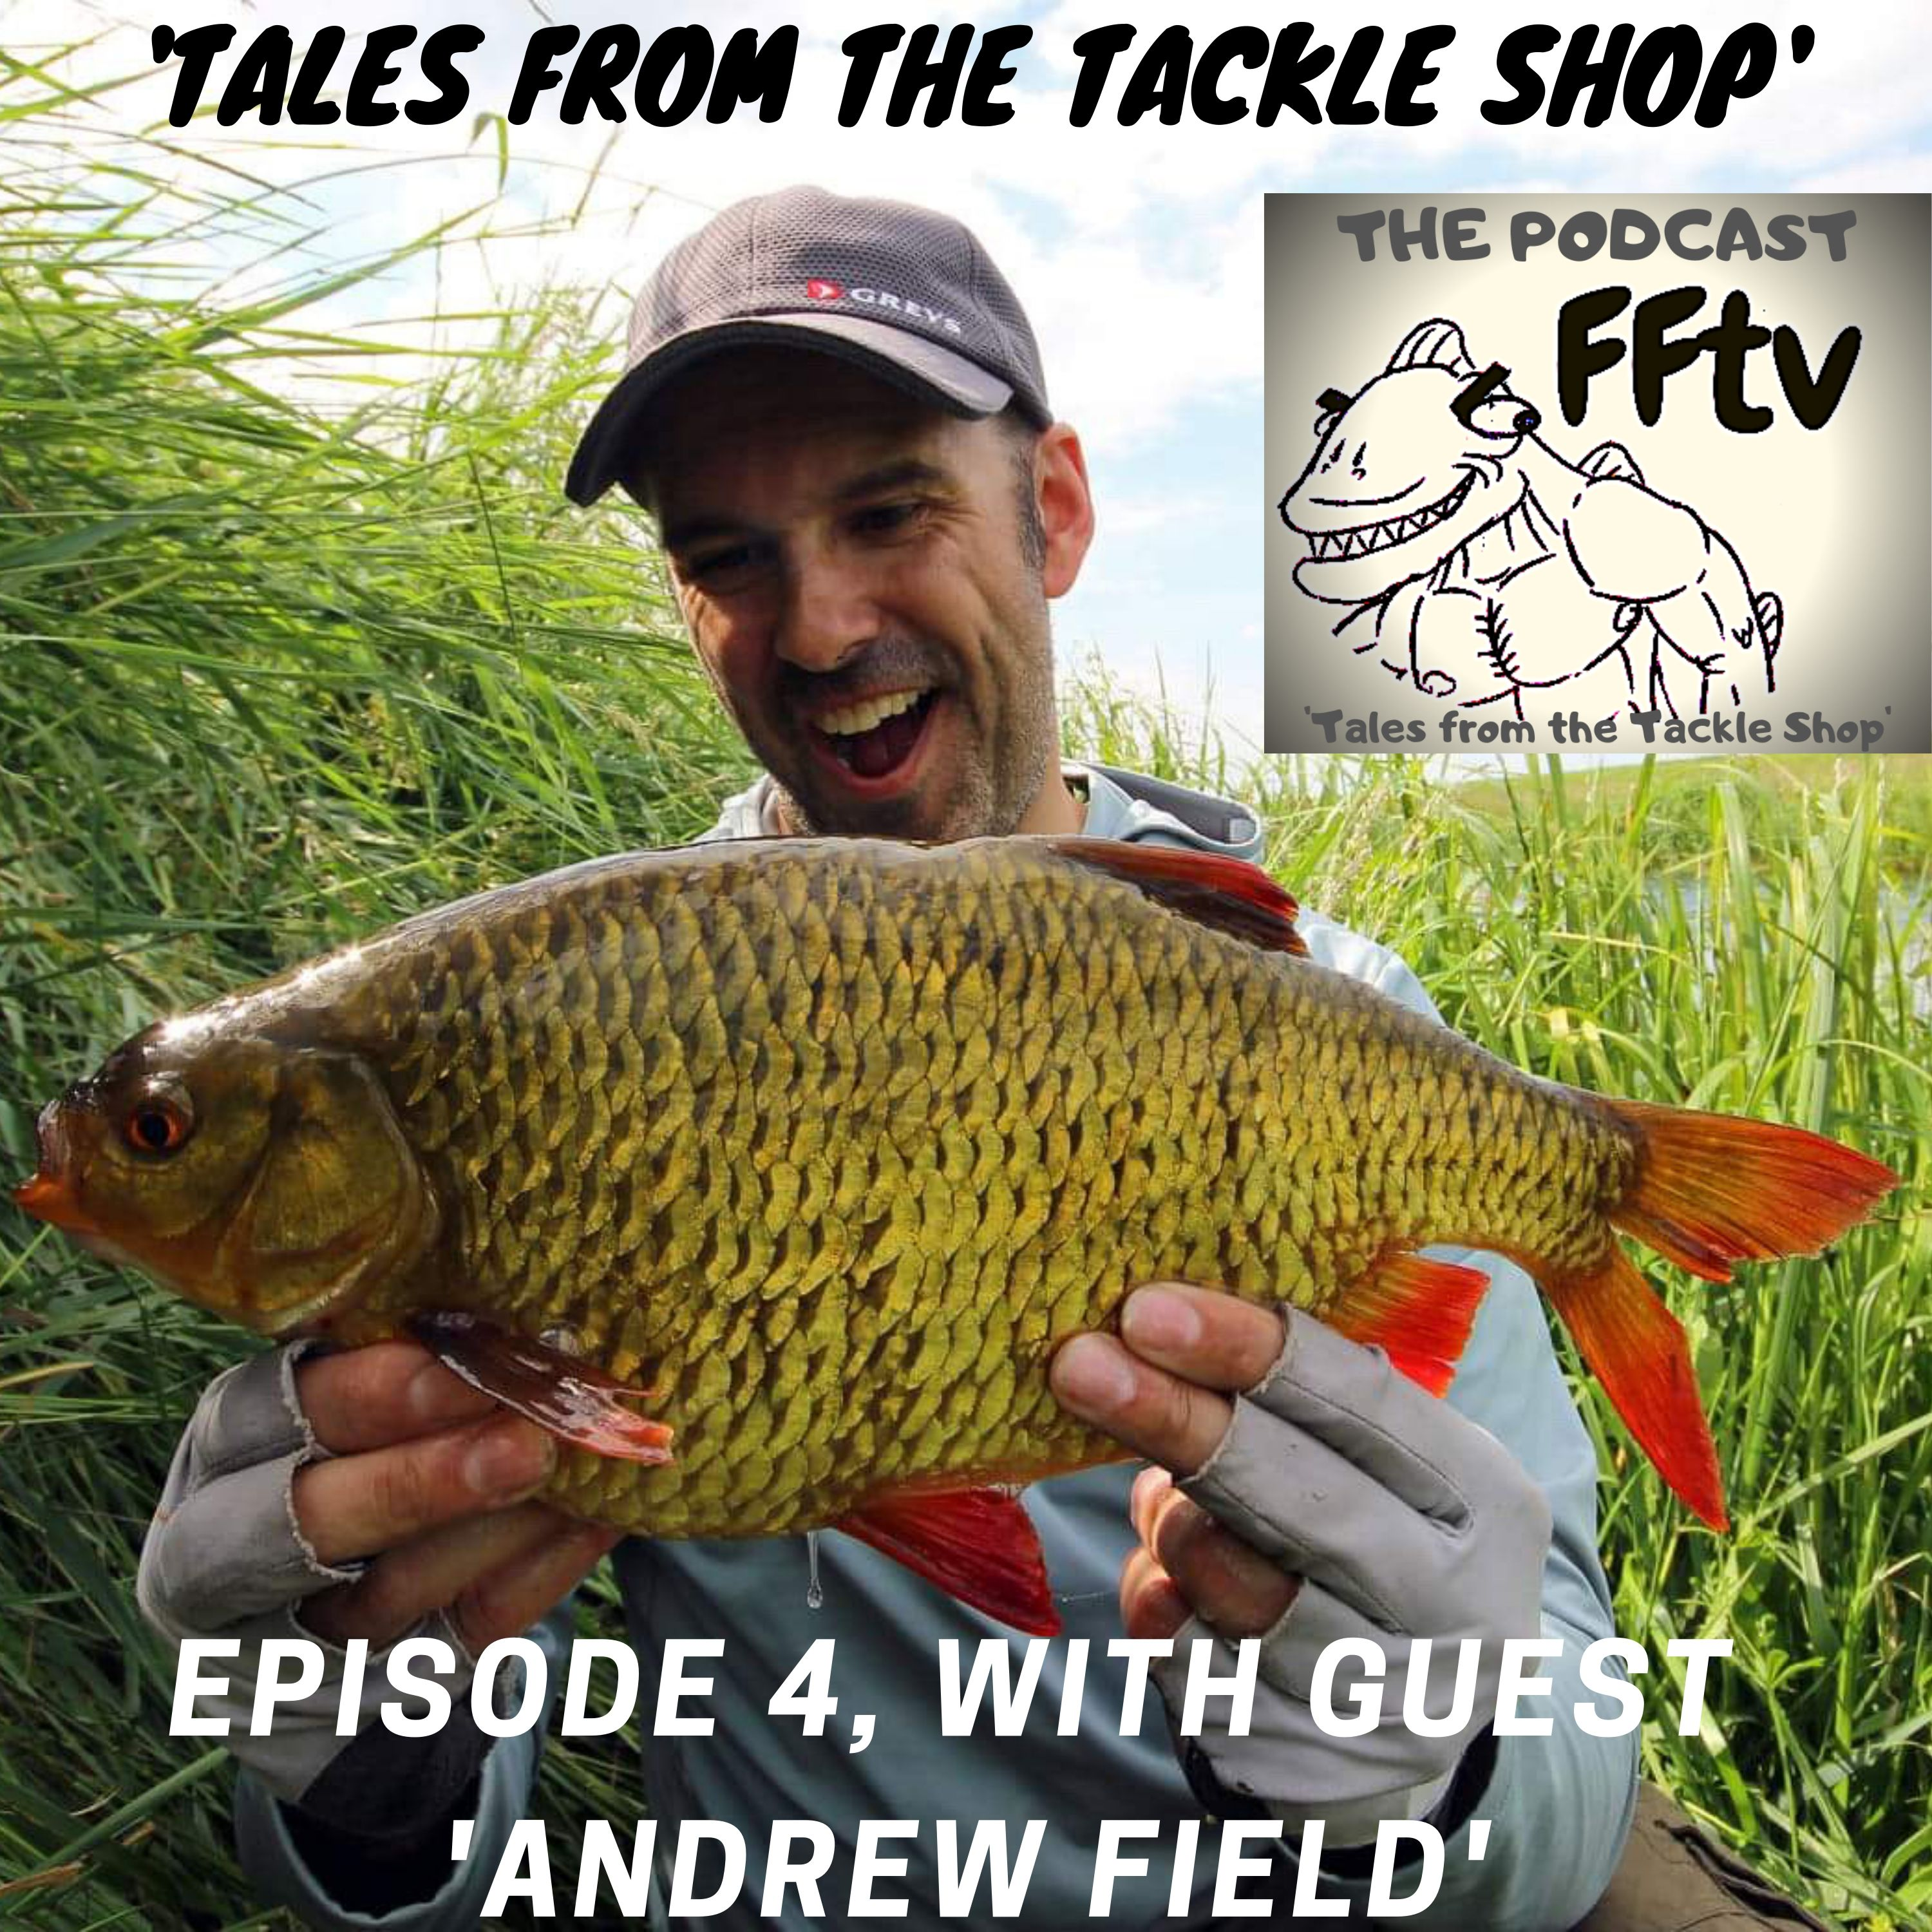 Episode 4 with guest Andrew Field